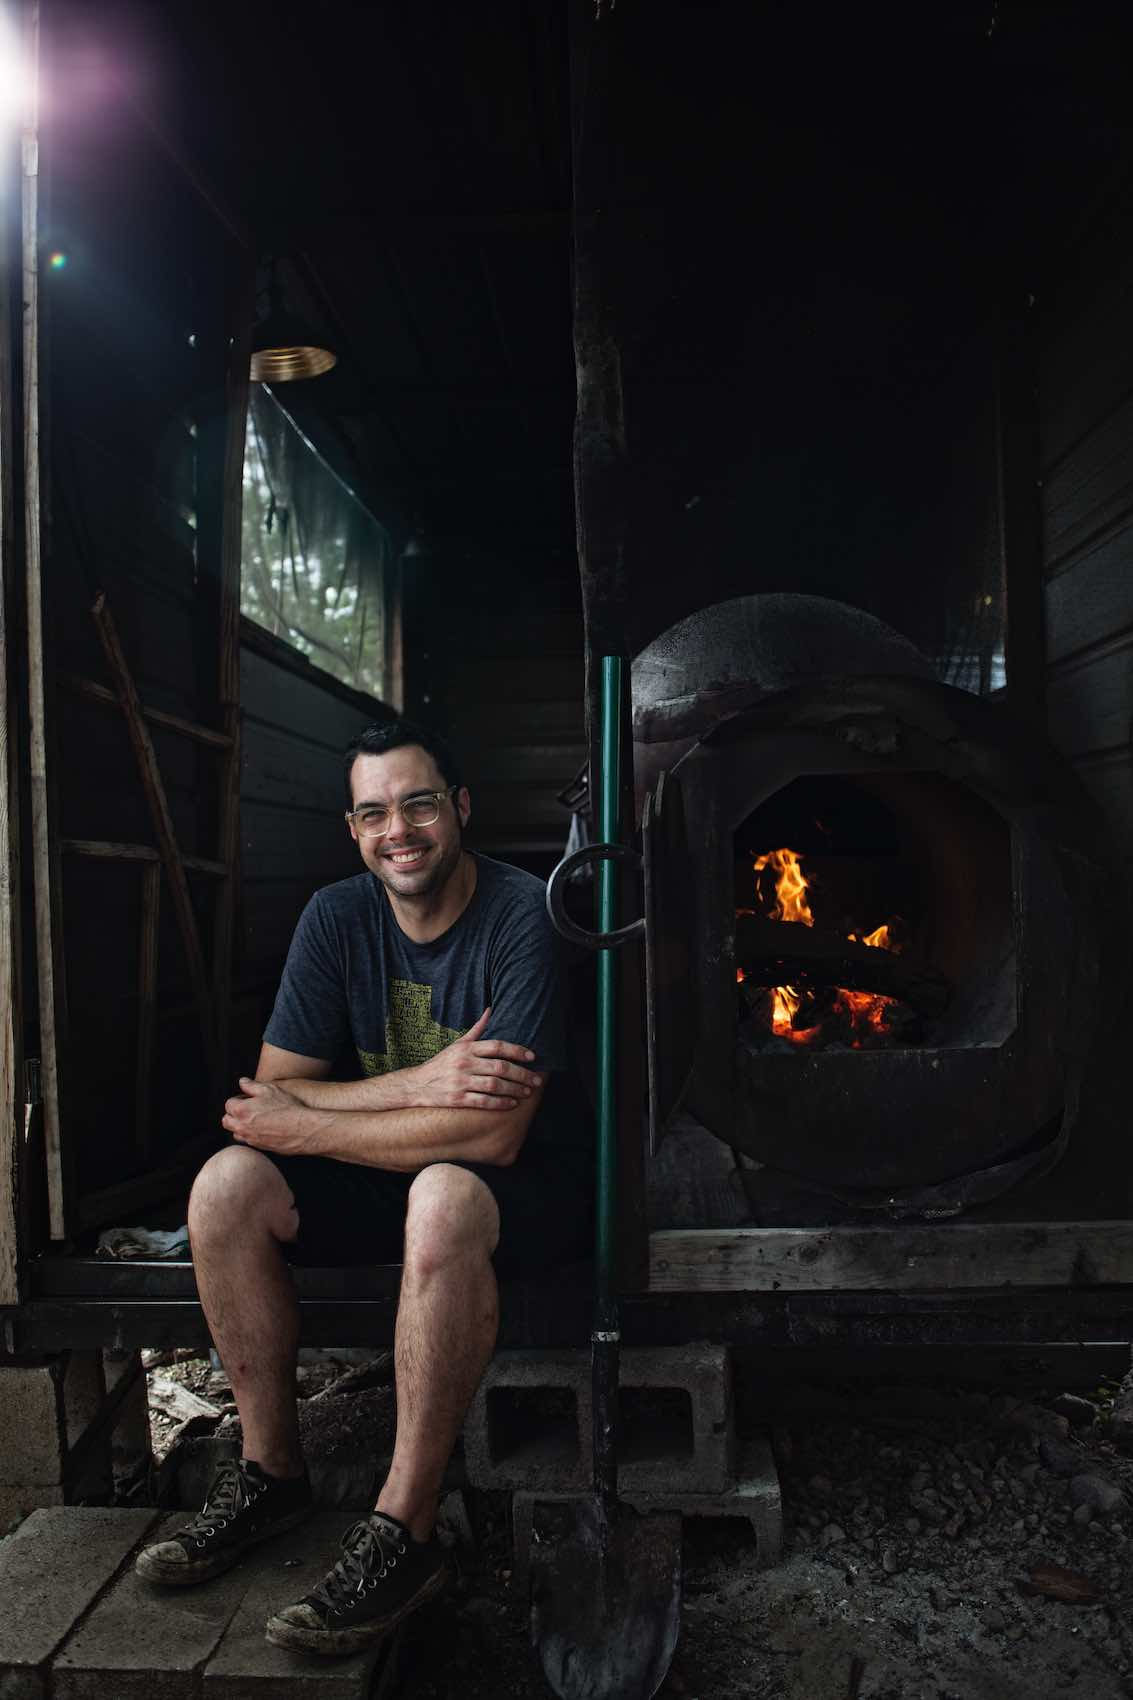 Jody Horton Photography - Aaron Franklin sitting next to barbecue smoker.